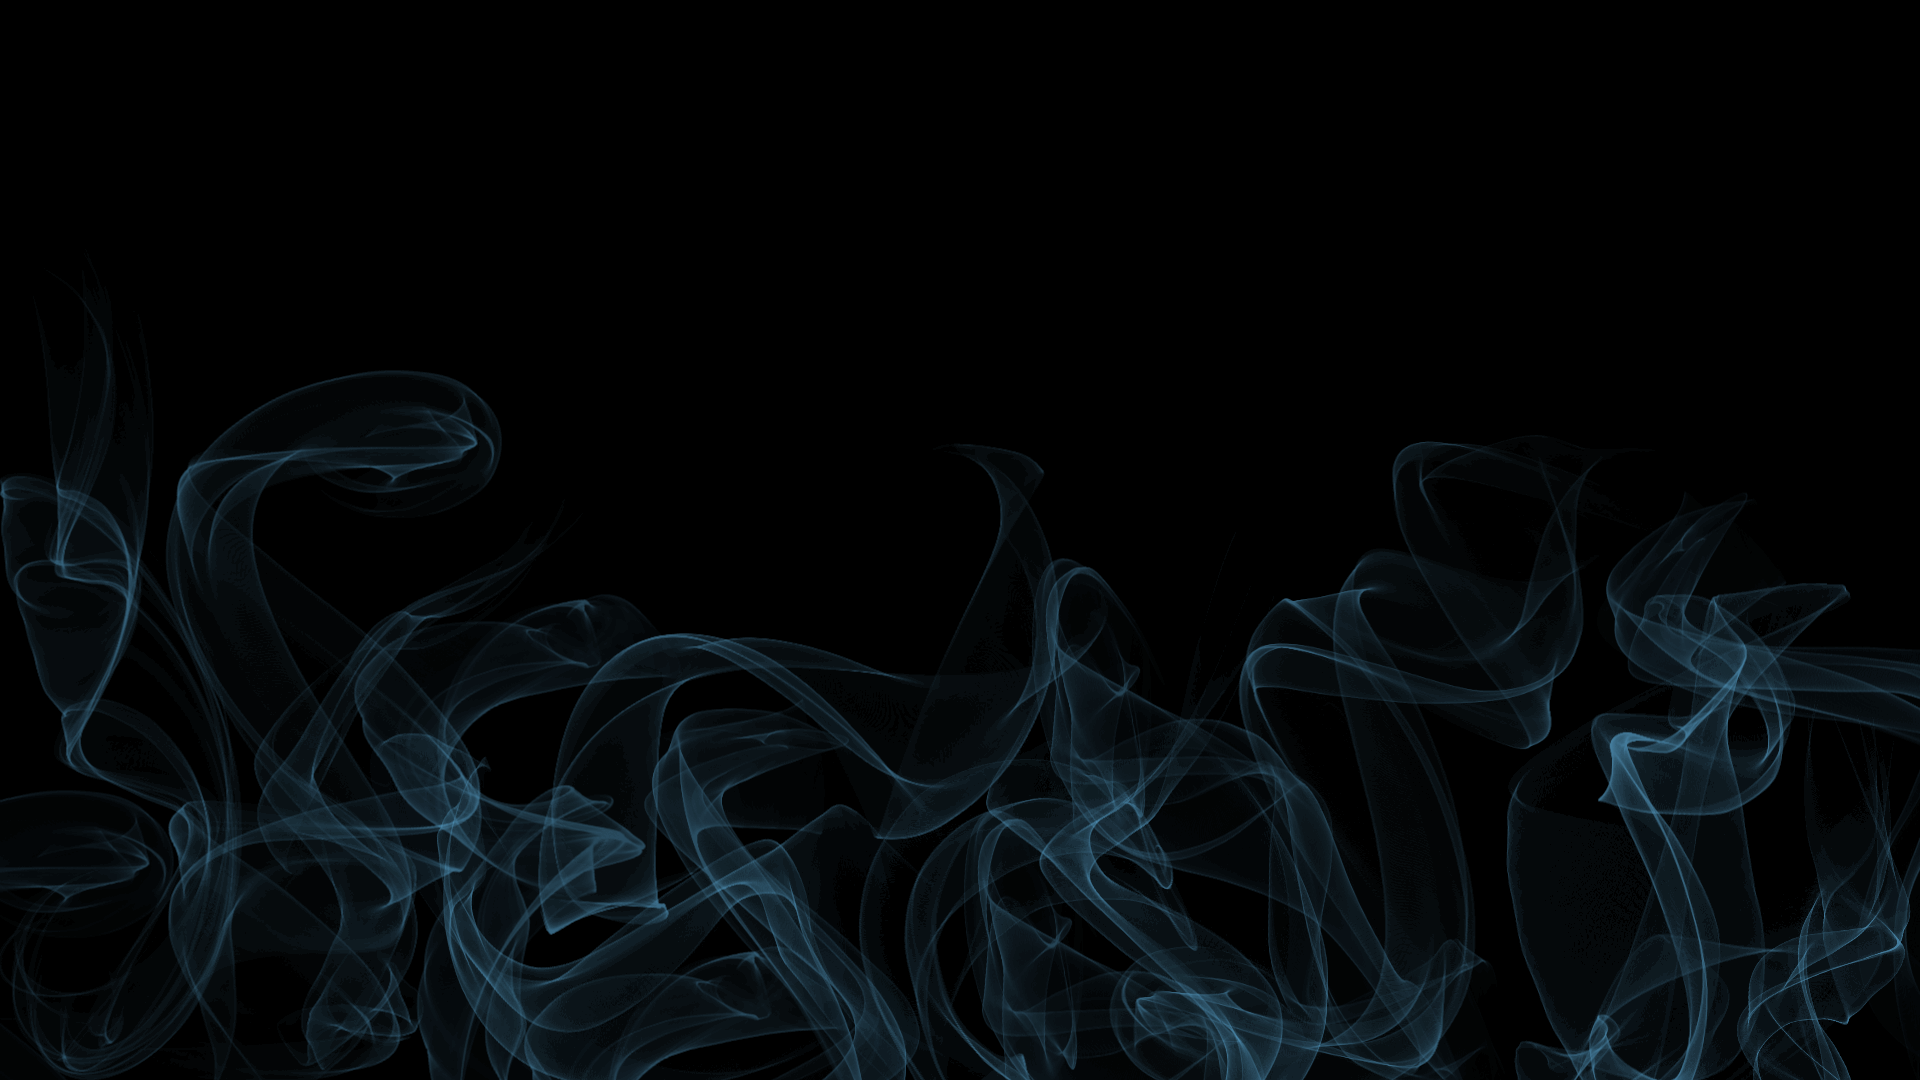 Smoke wallpaper widescreen background 1920x1080